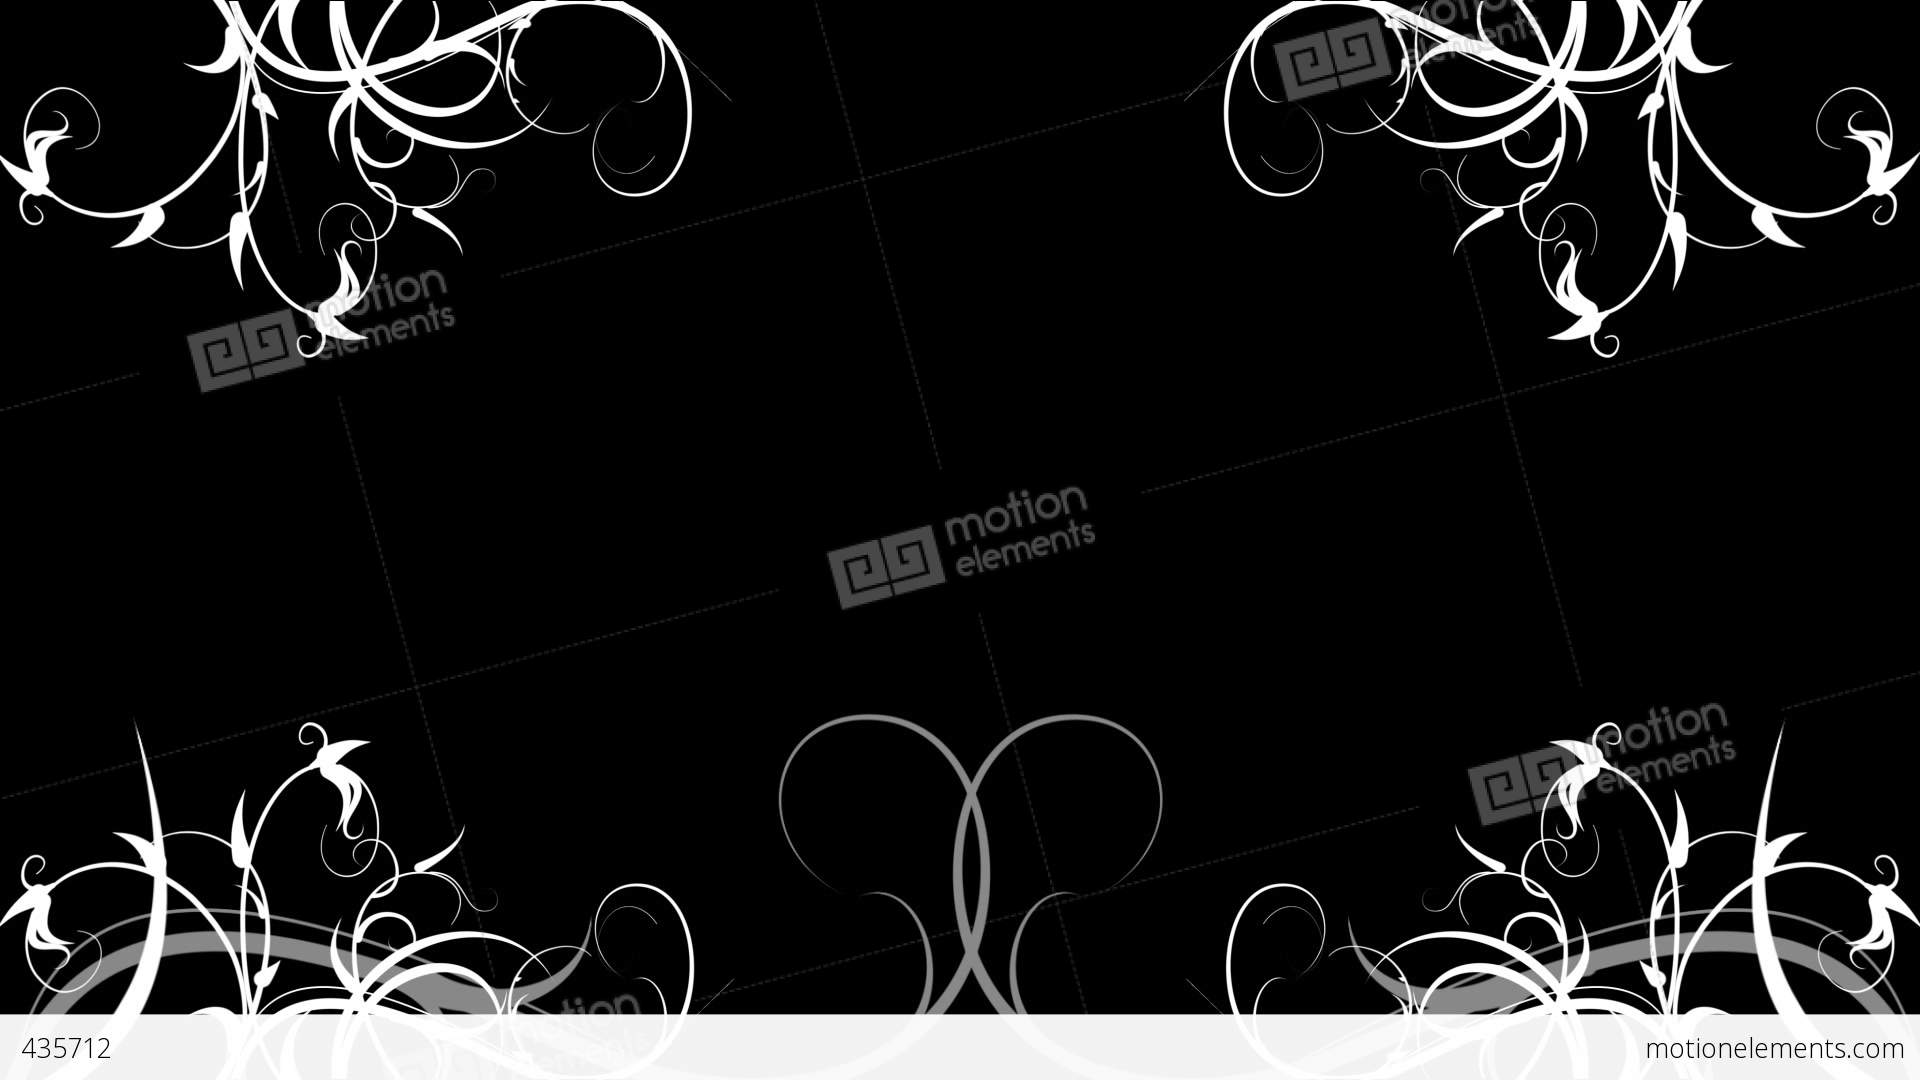 Deluxe Photo Editor App Download Black Photo Editor Ios Photo Editor Background Free Round Designs Photo Editor Background Free Round Designs Black photos Black And White Photo Editor